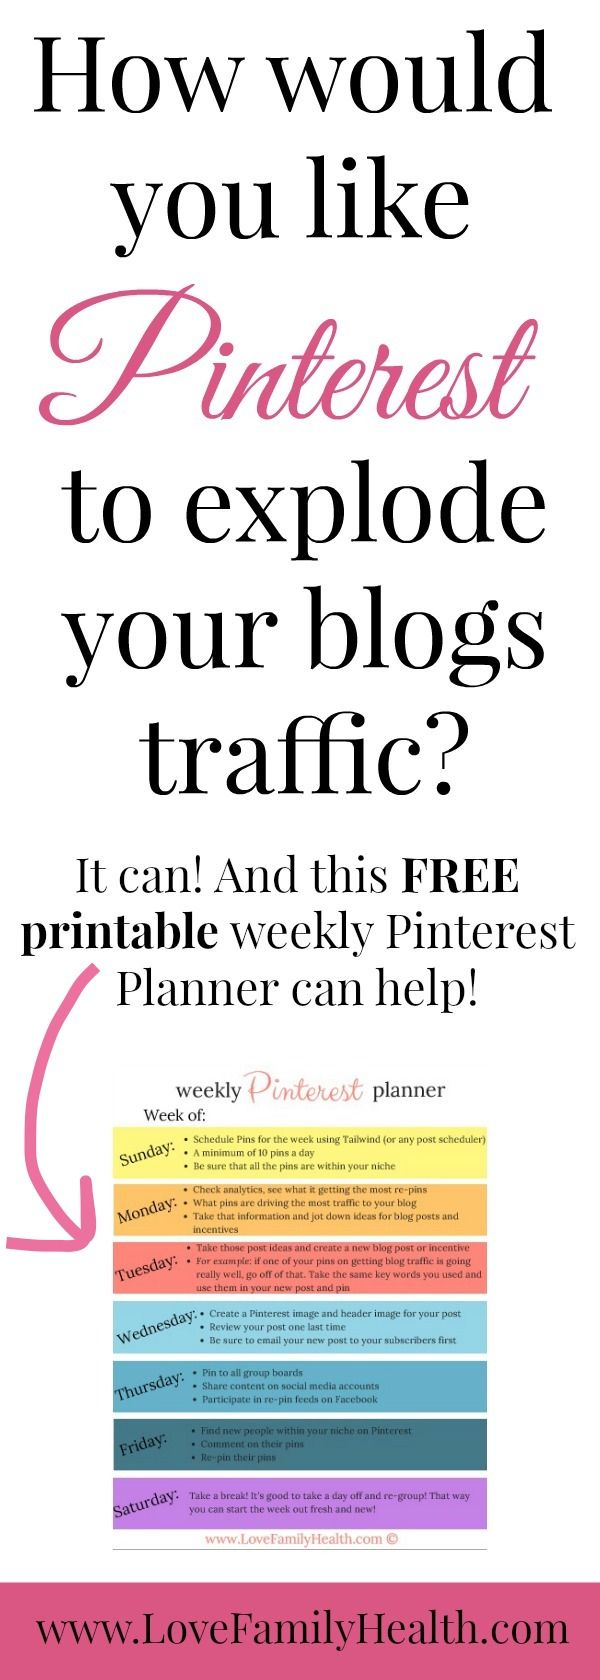 EXPLODE your blogs traffic with your FREE PRINTABLE weekly Pinterest Planner!